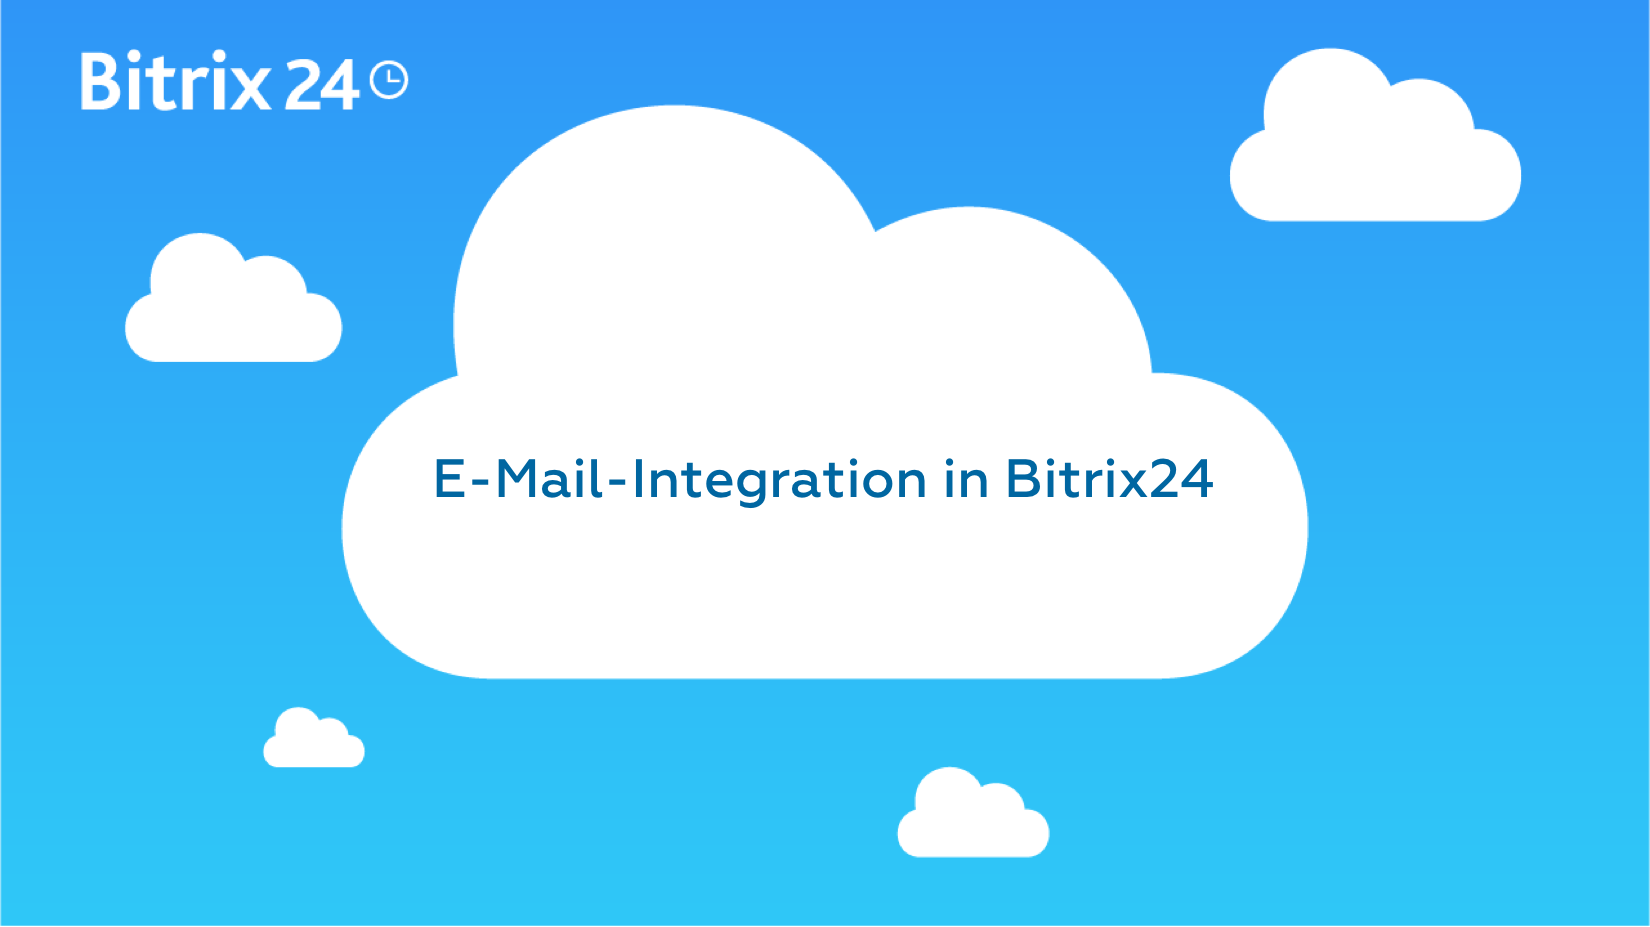 E-Mail-Integration in Bitrix24